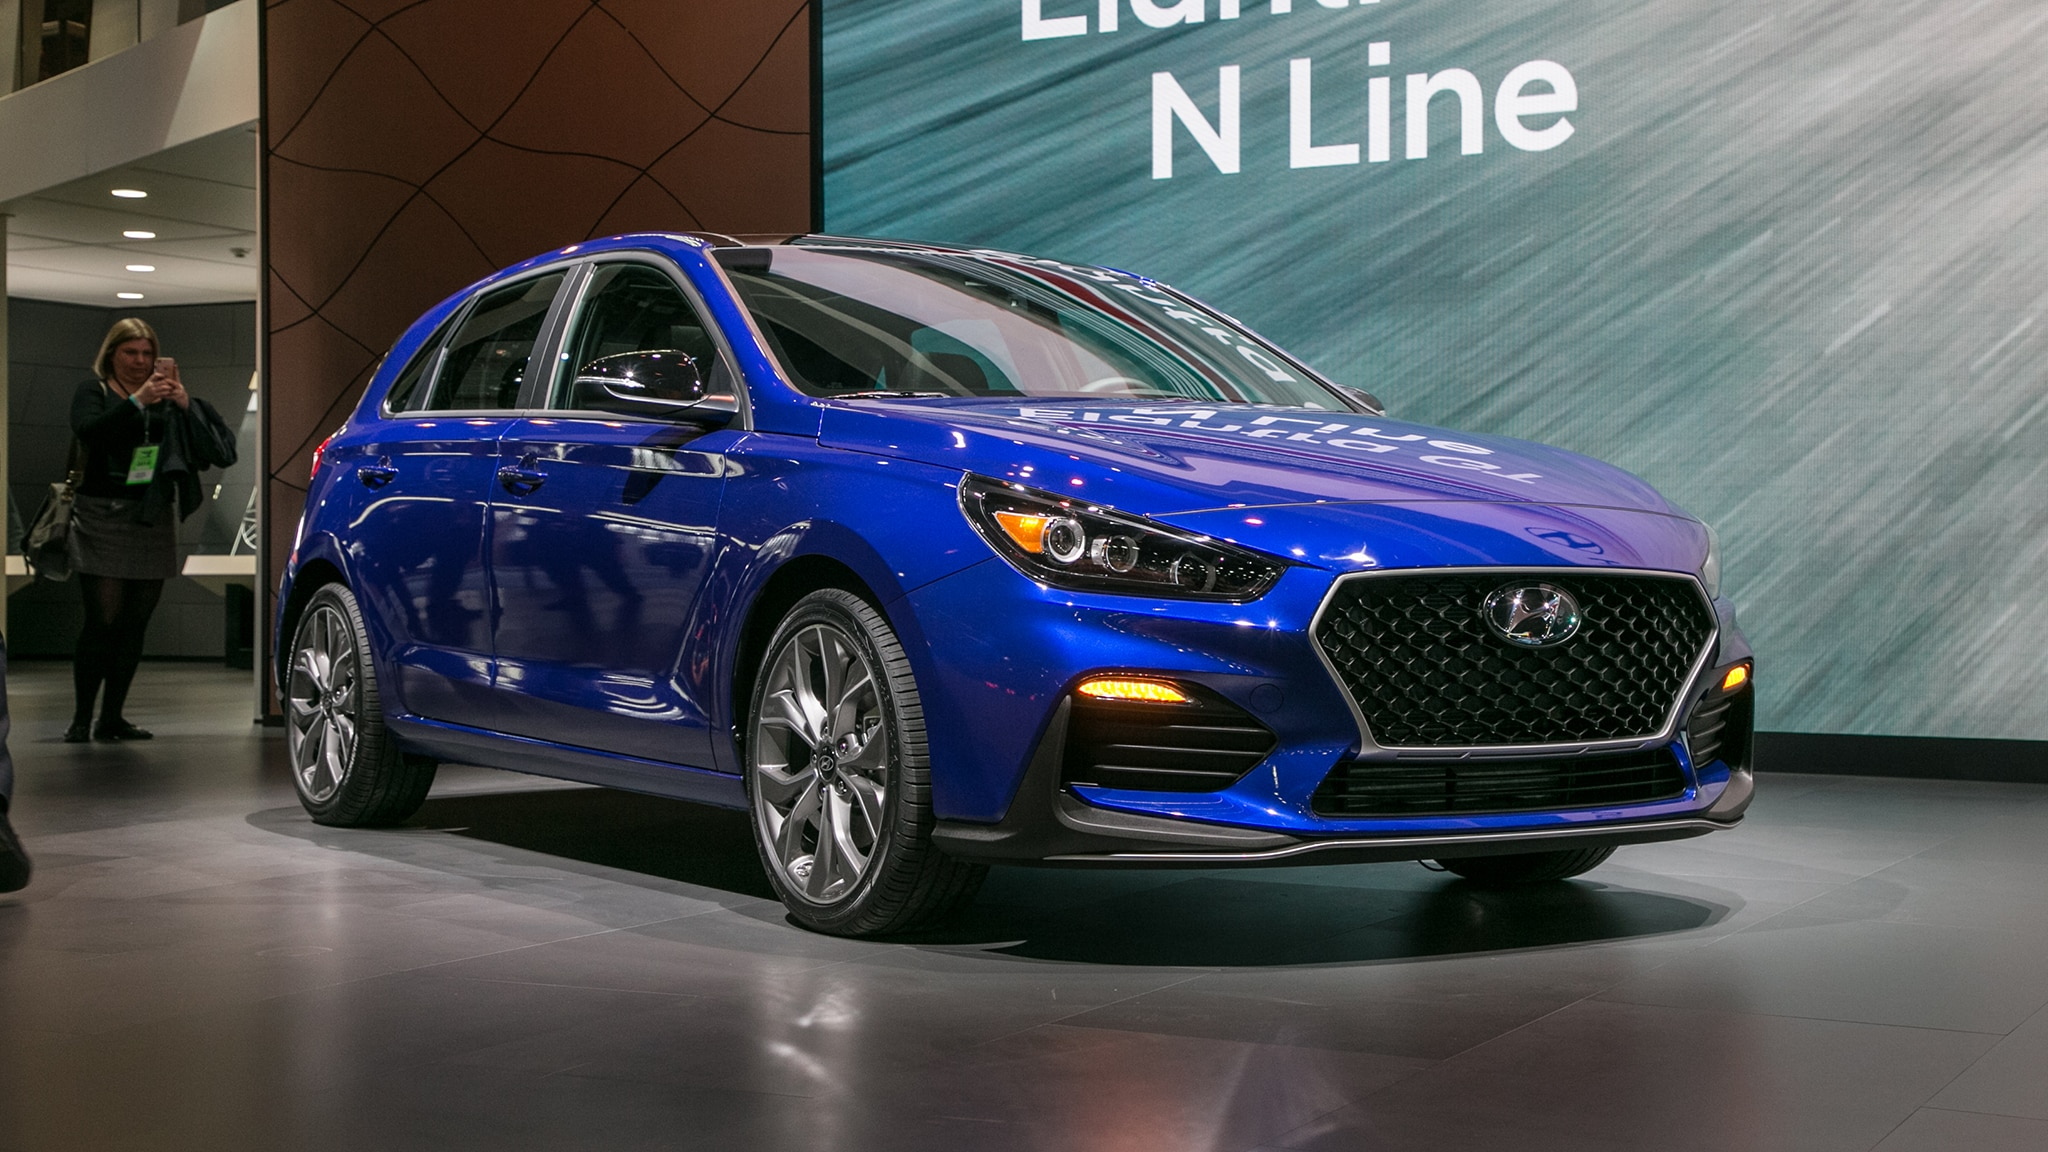 the elantra gt sport is dead long live the hyundai elantra gt n line long live the hyundai elantra gt n line